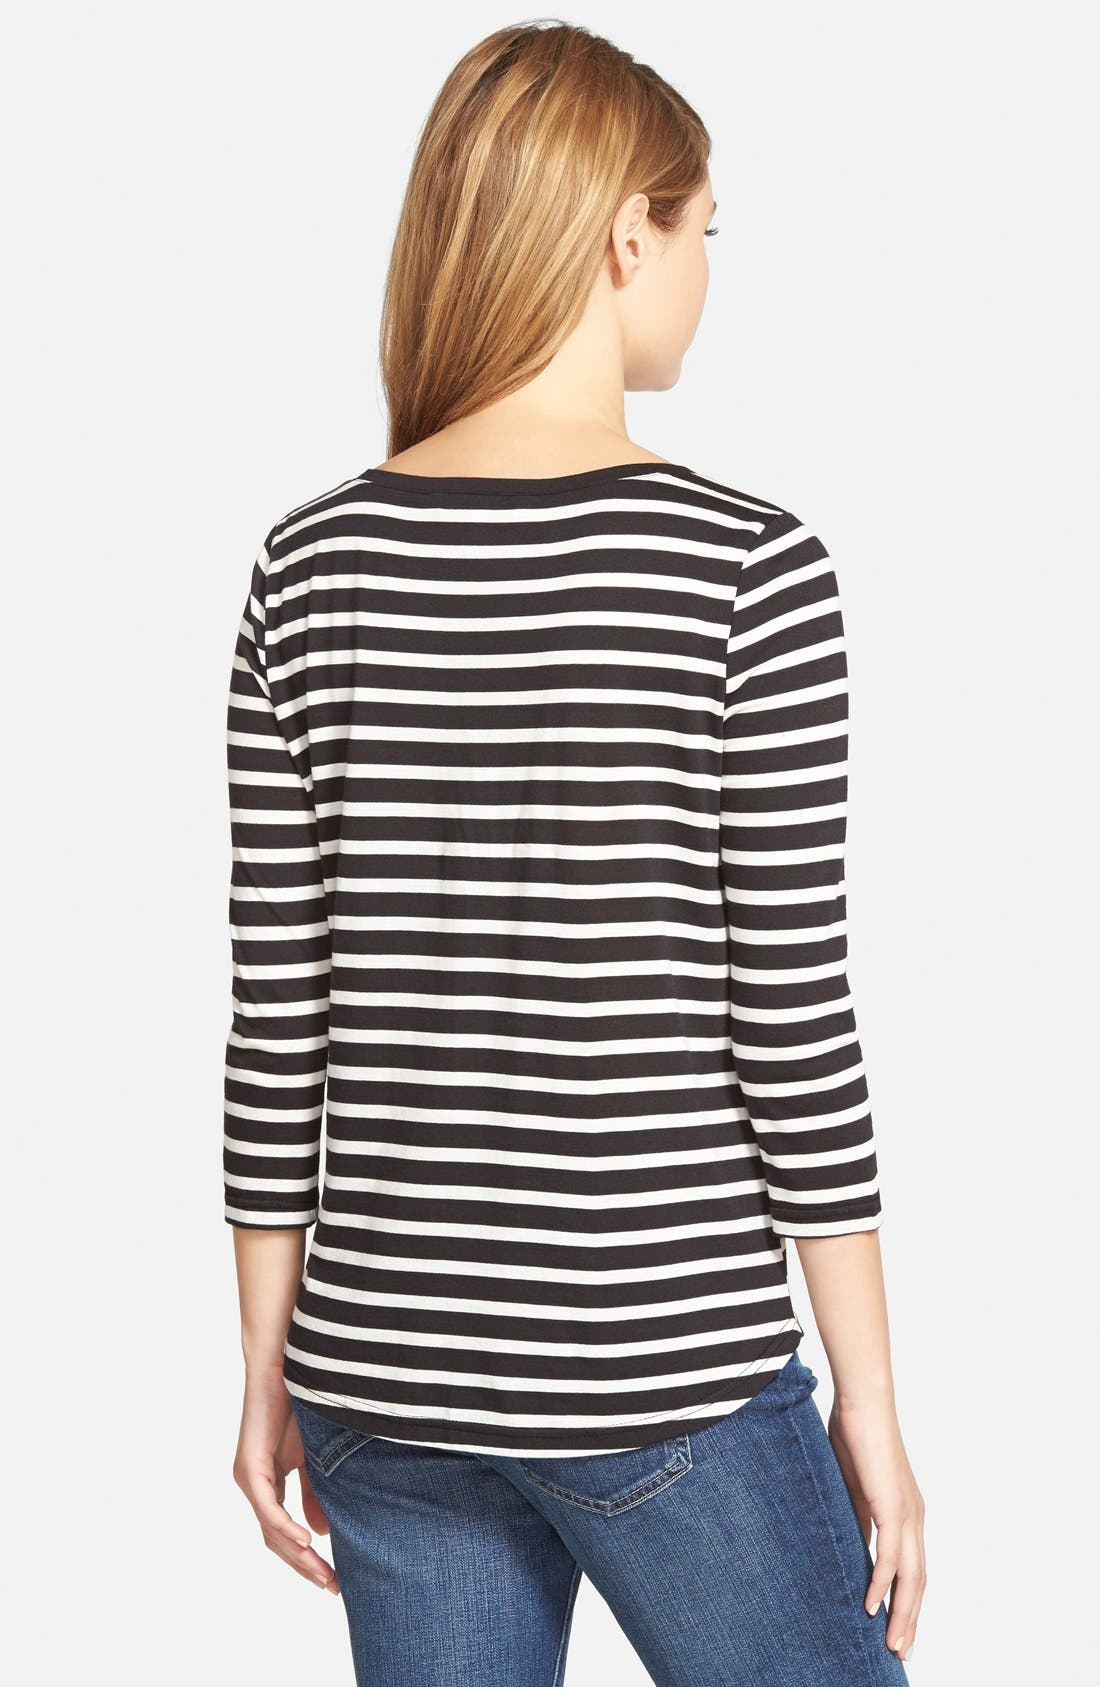 CUPCAKES AND CASHMERE, 'Mendocino' Stripe Top, Alternate thumbnail 3, color, 001